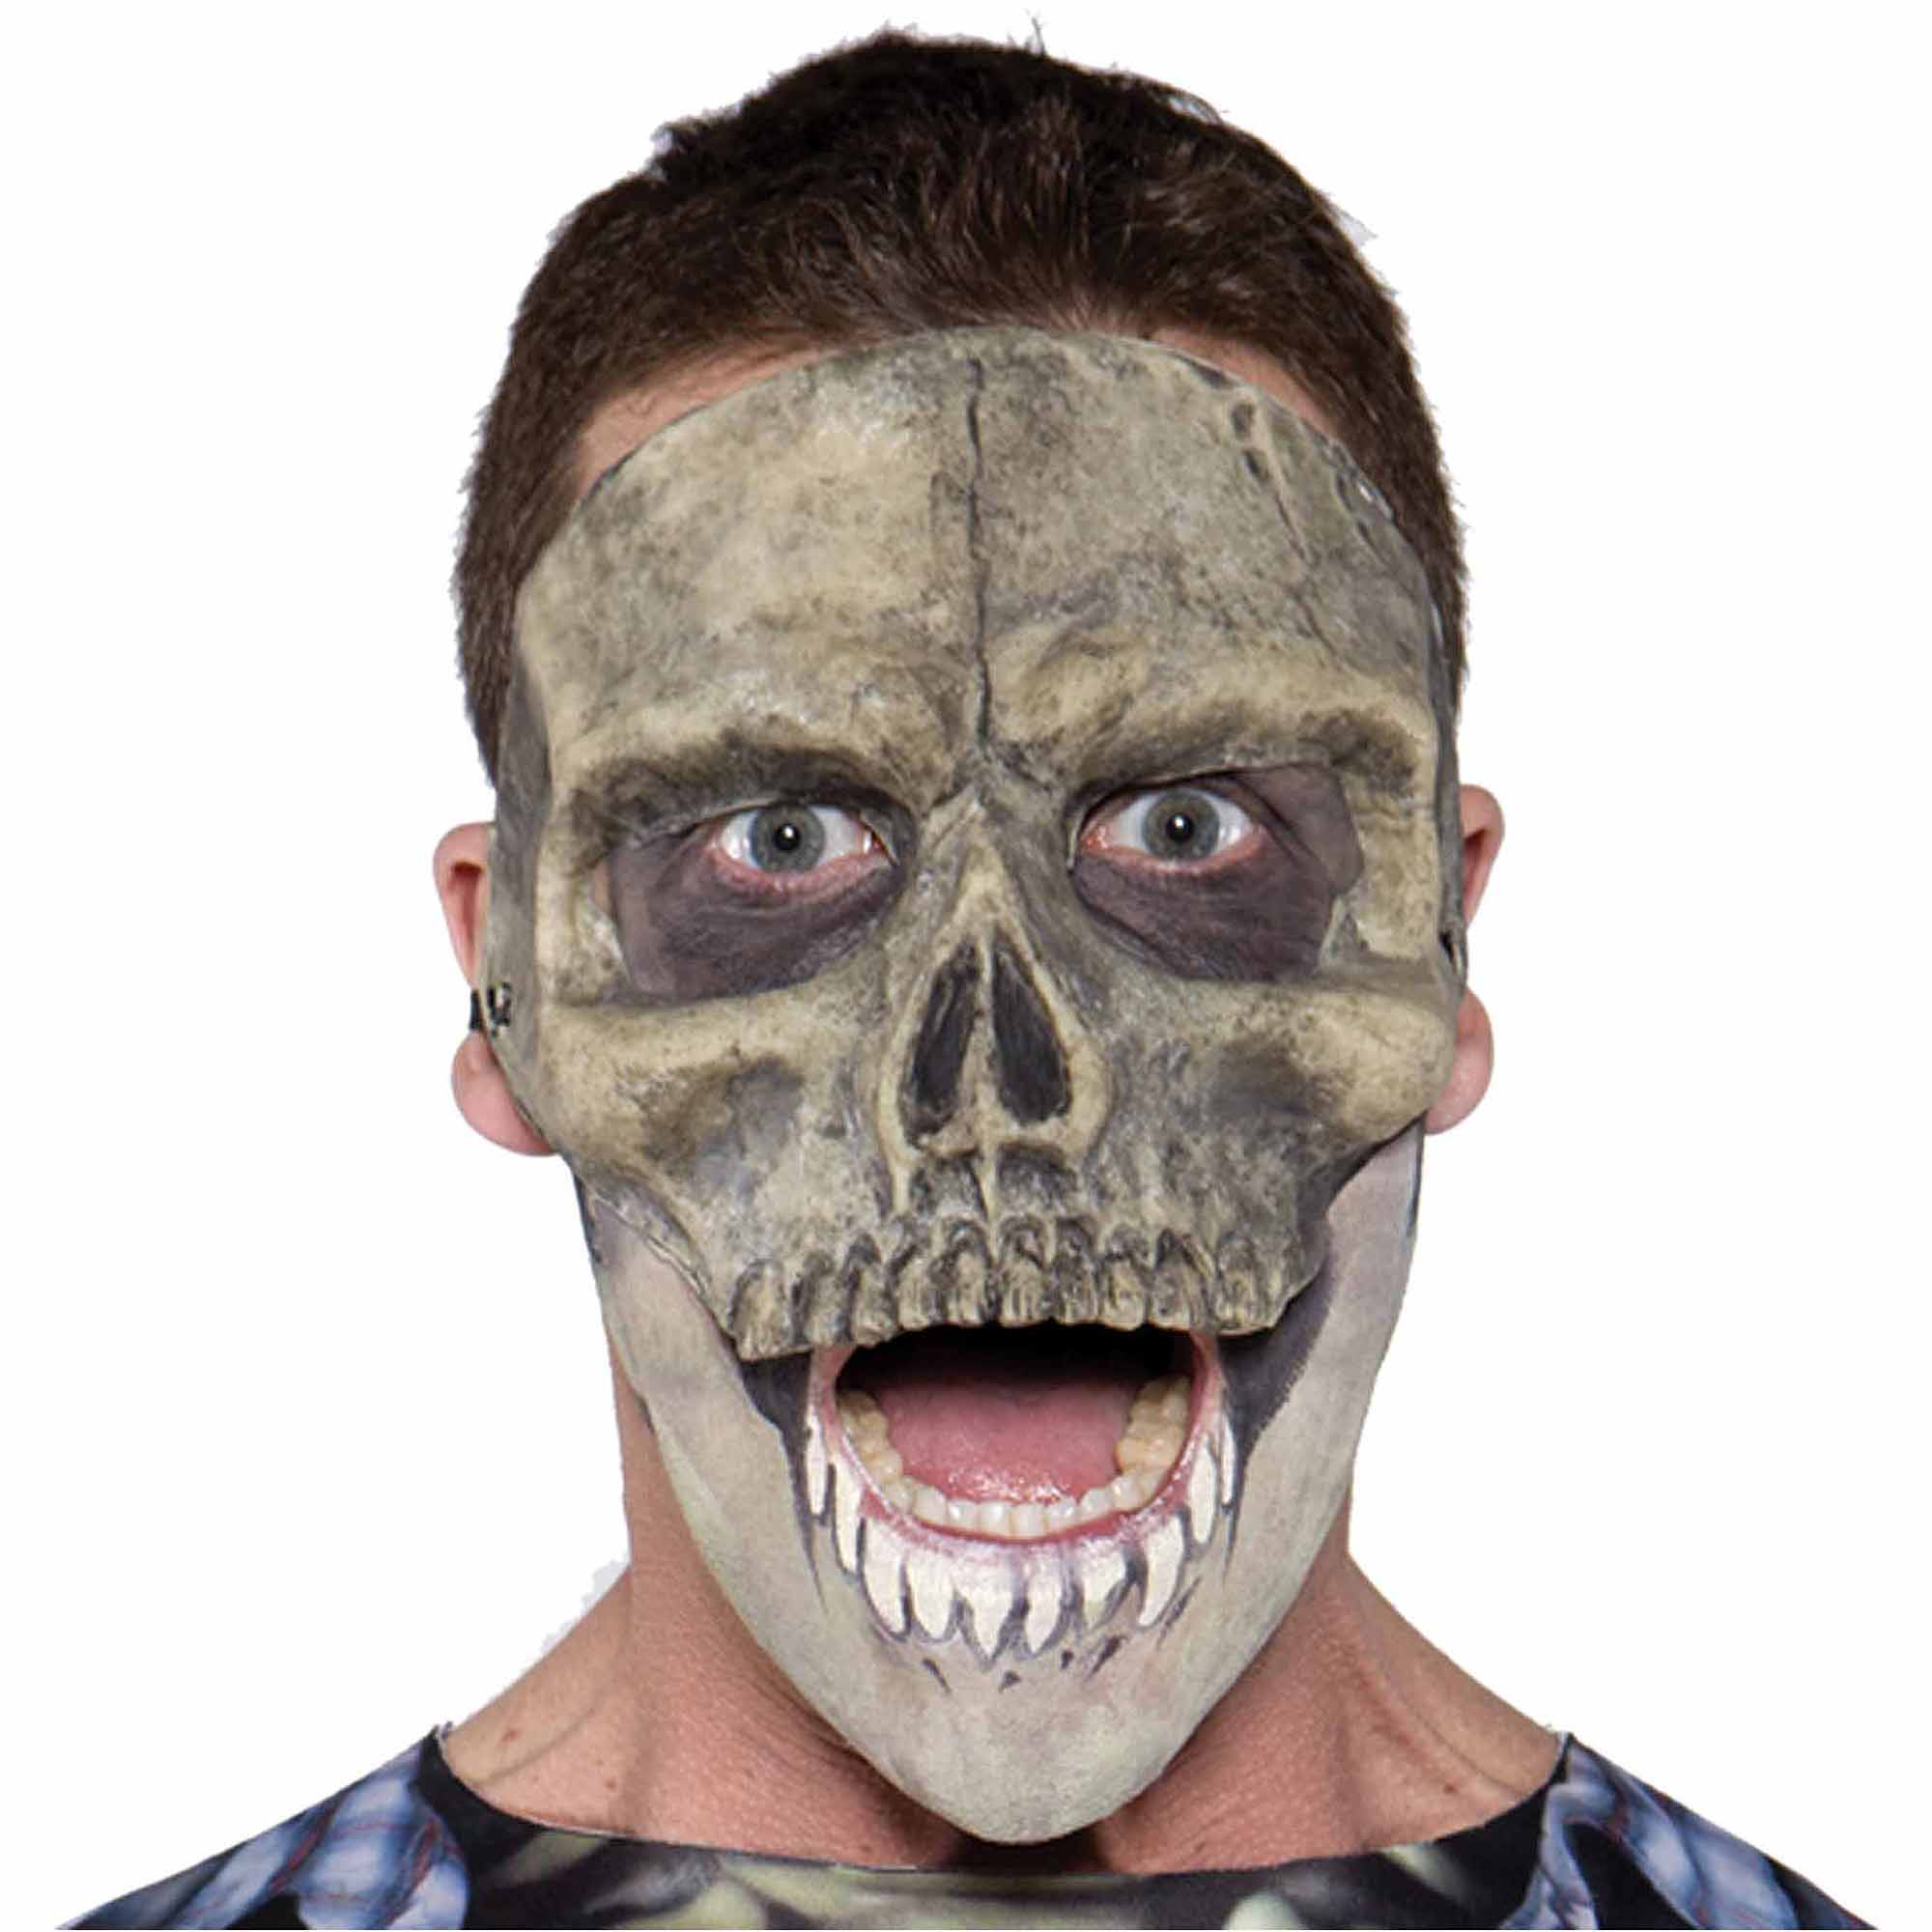 Skull Mask Latex Adult Halloween Accessory